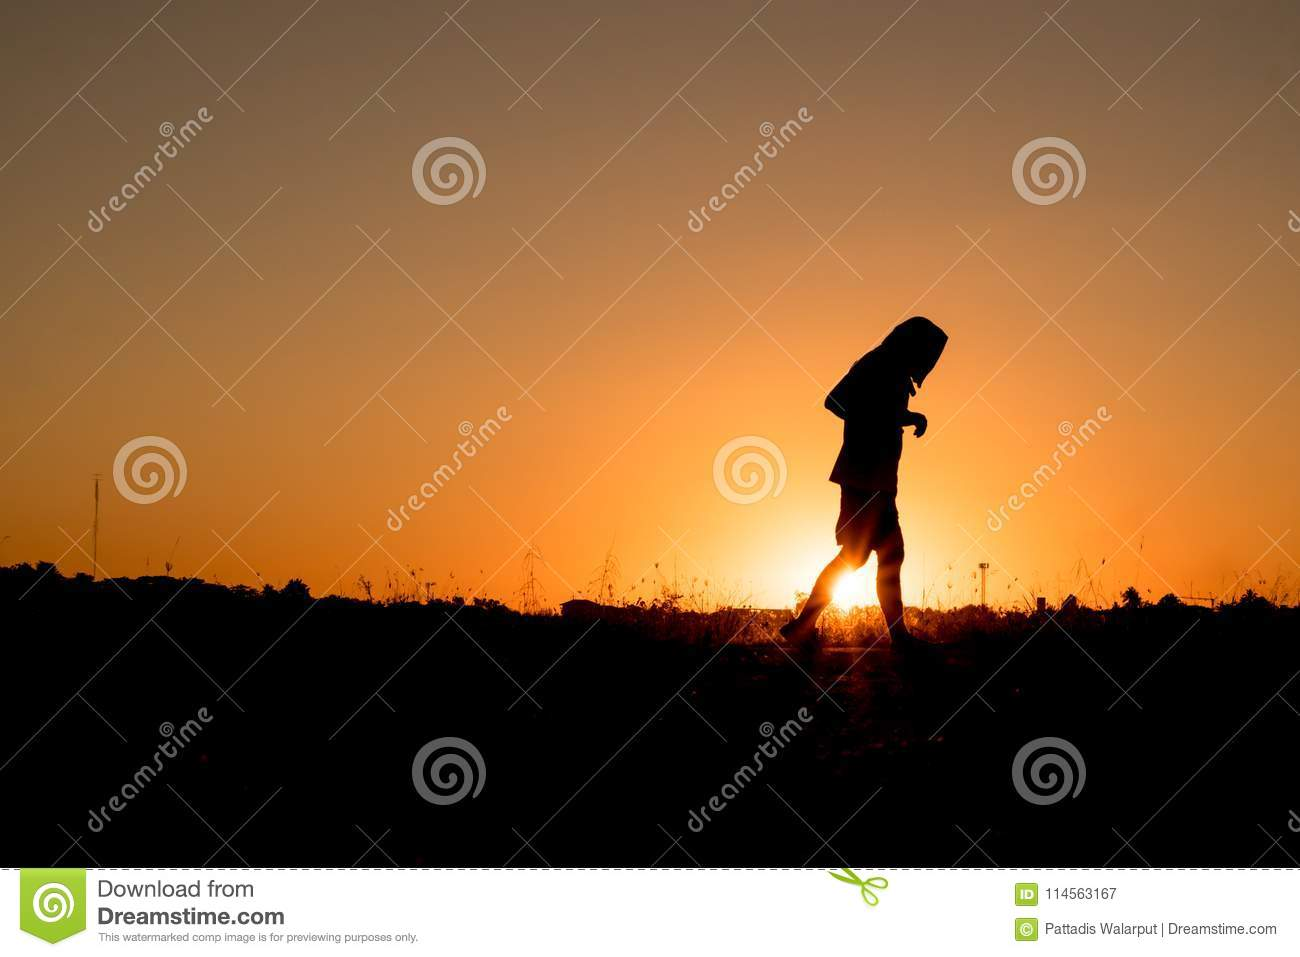 Silhouette of a man walking or jogging for exercise in the park at sunset.